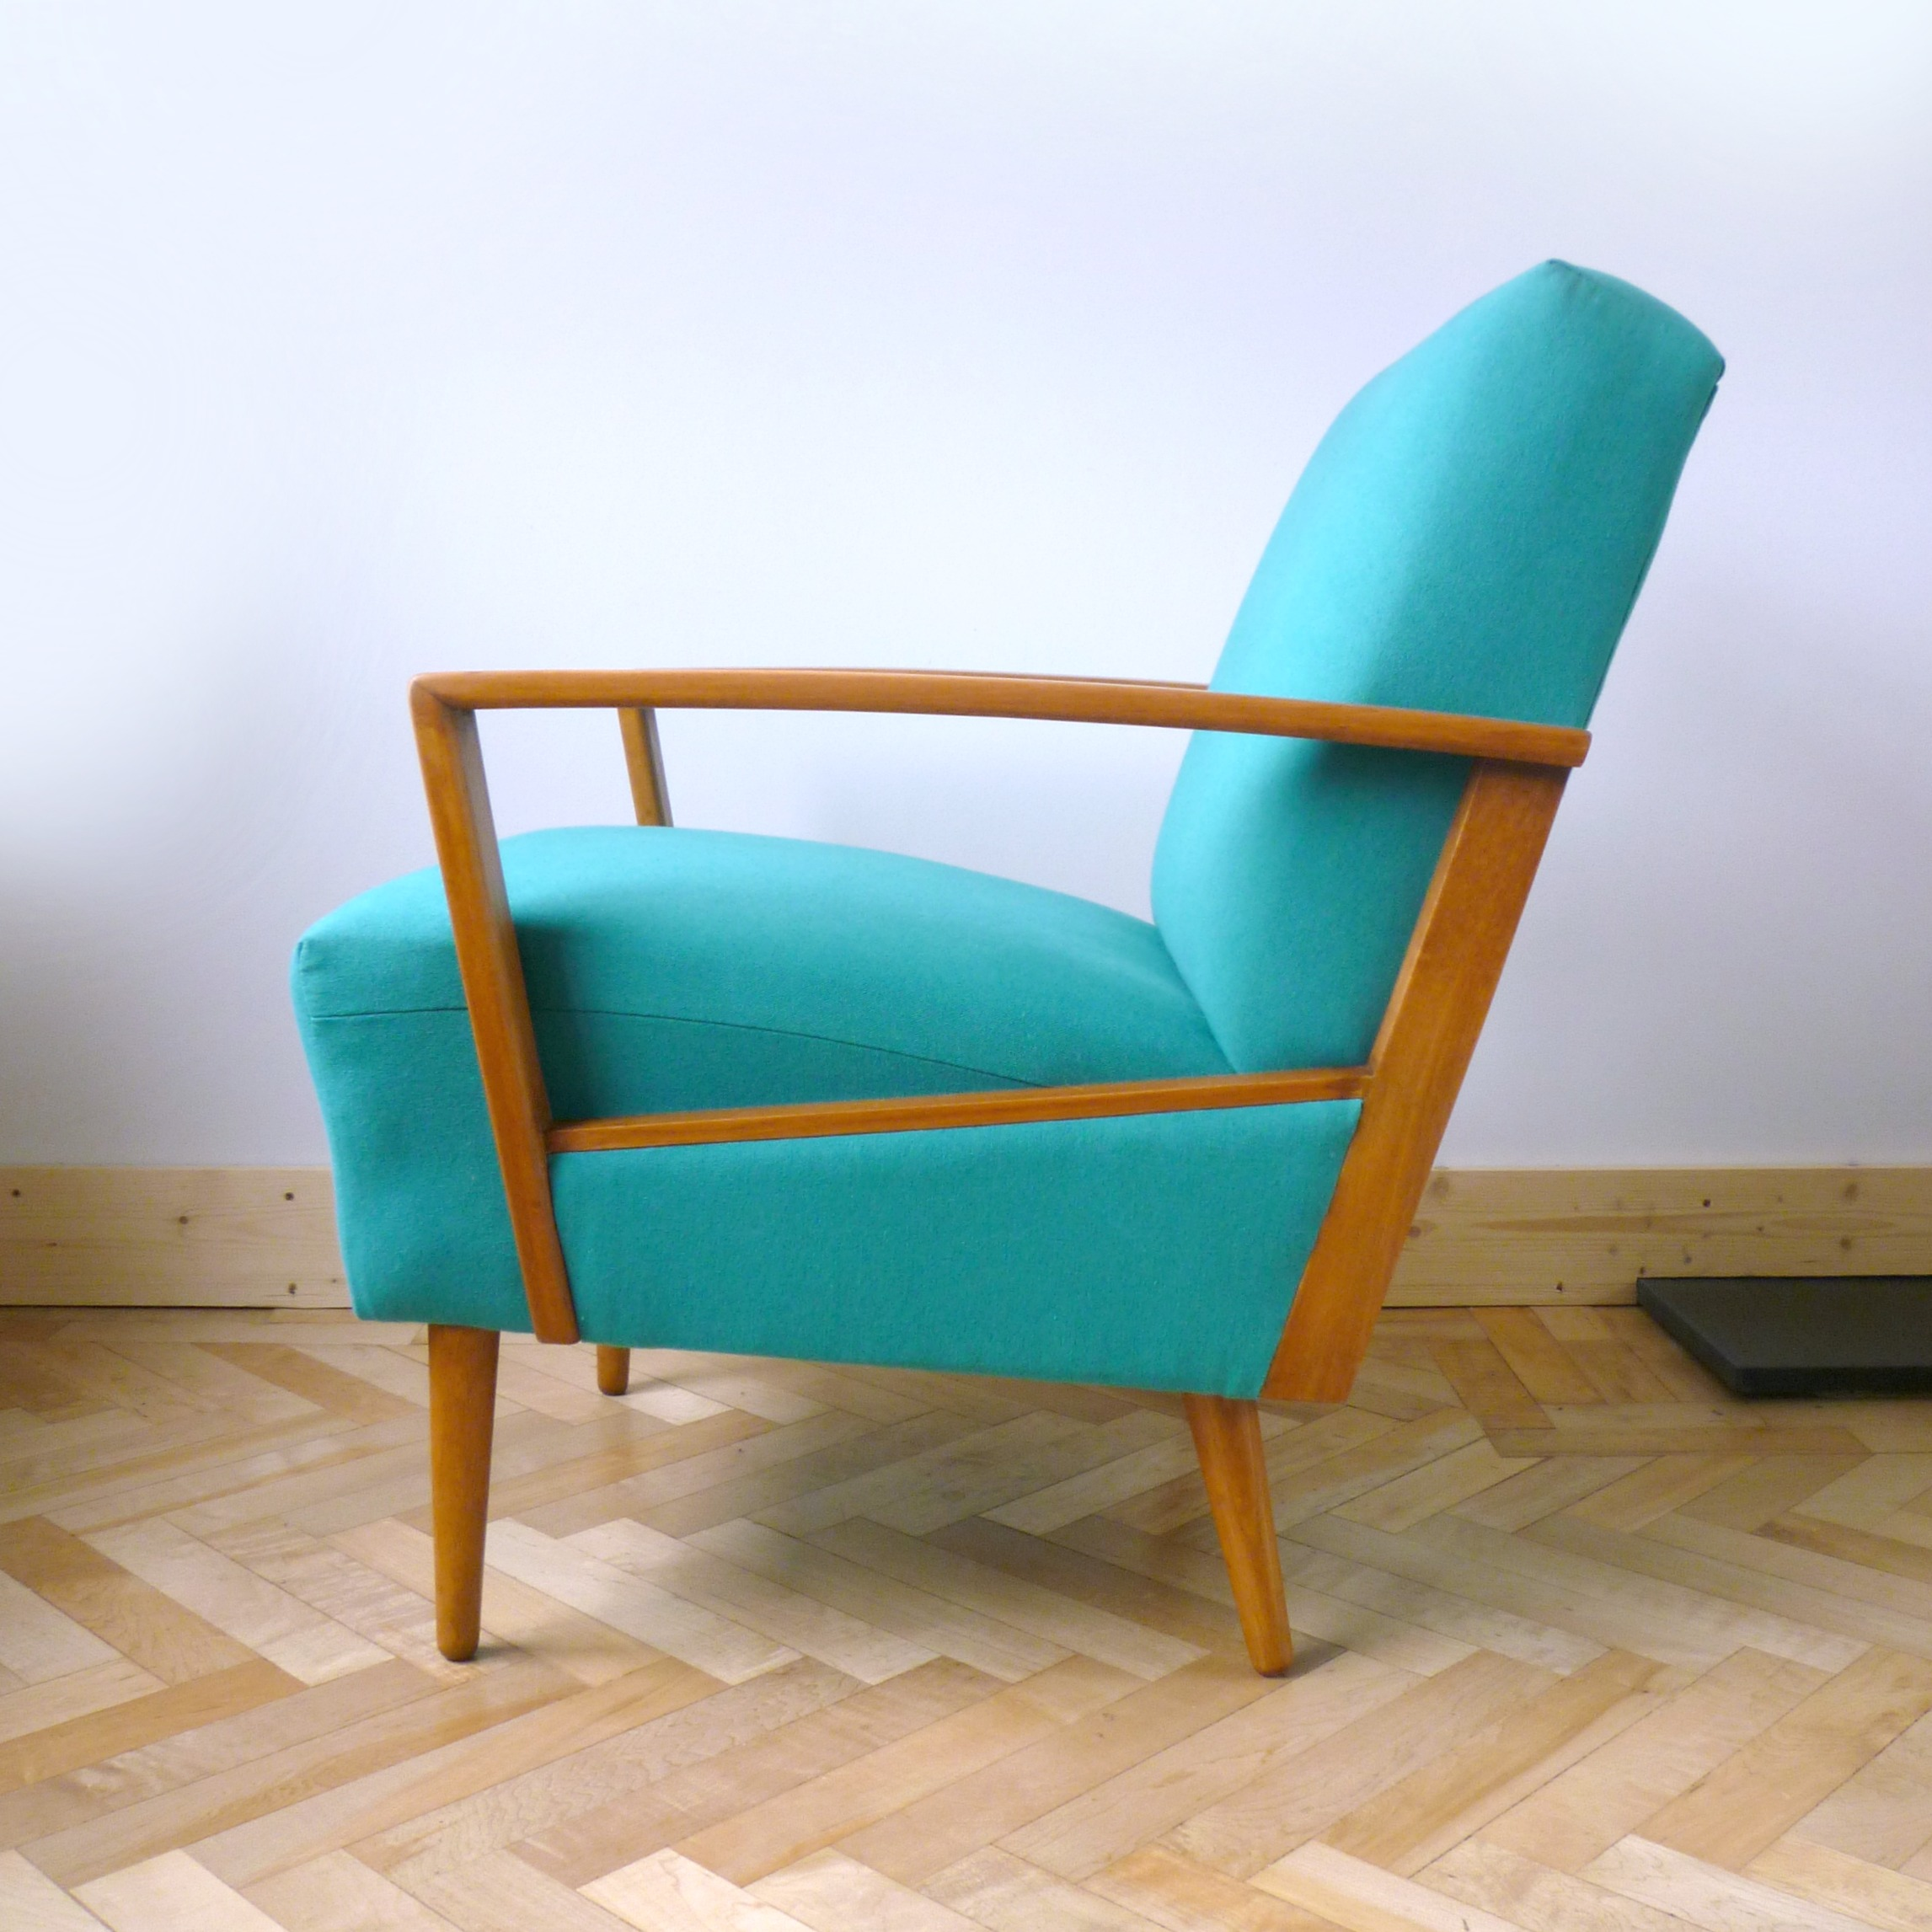 Charmant Florrie And Bill Danish Armchair Side In Teal Designers Guild Allian Fabric